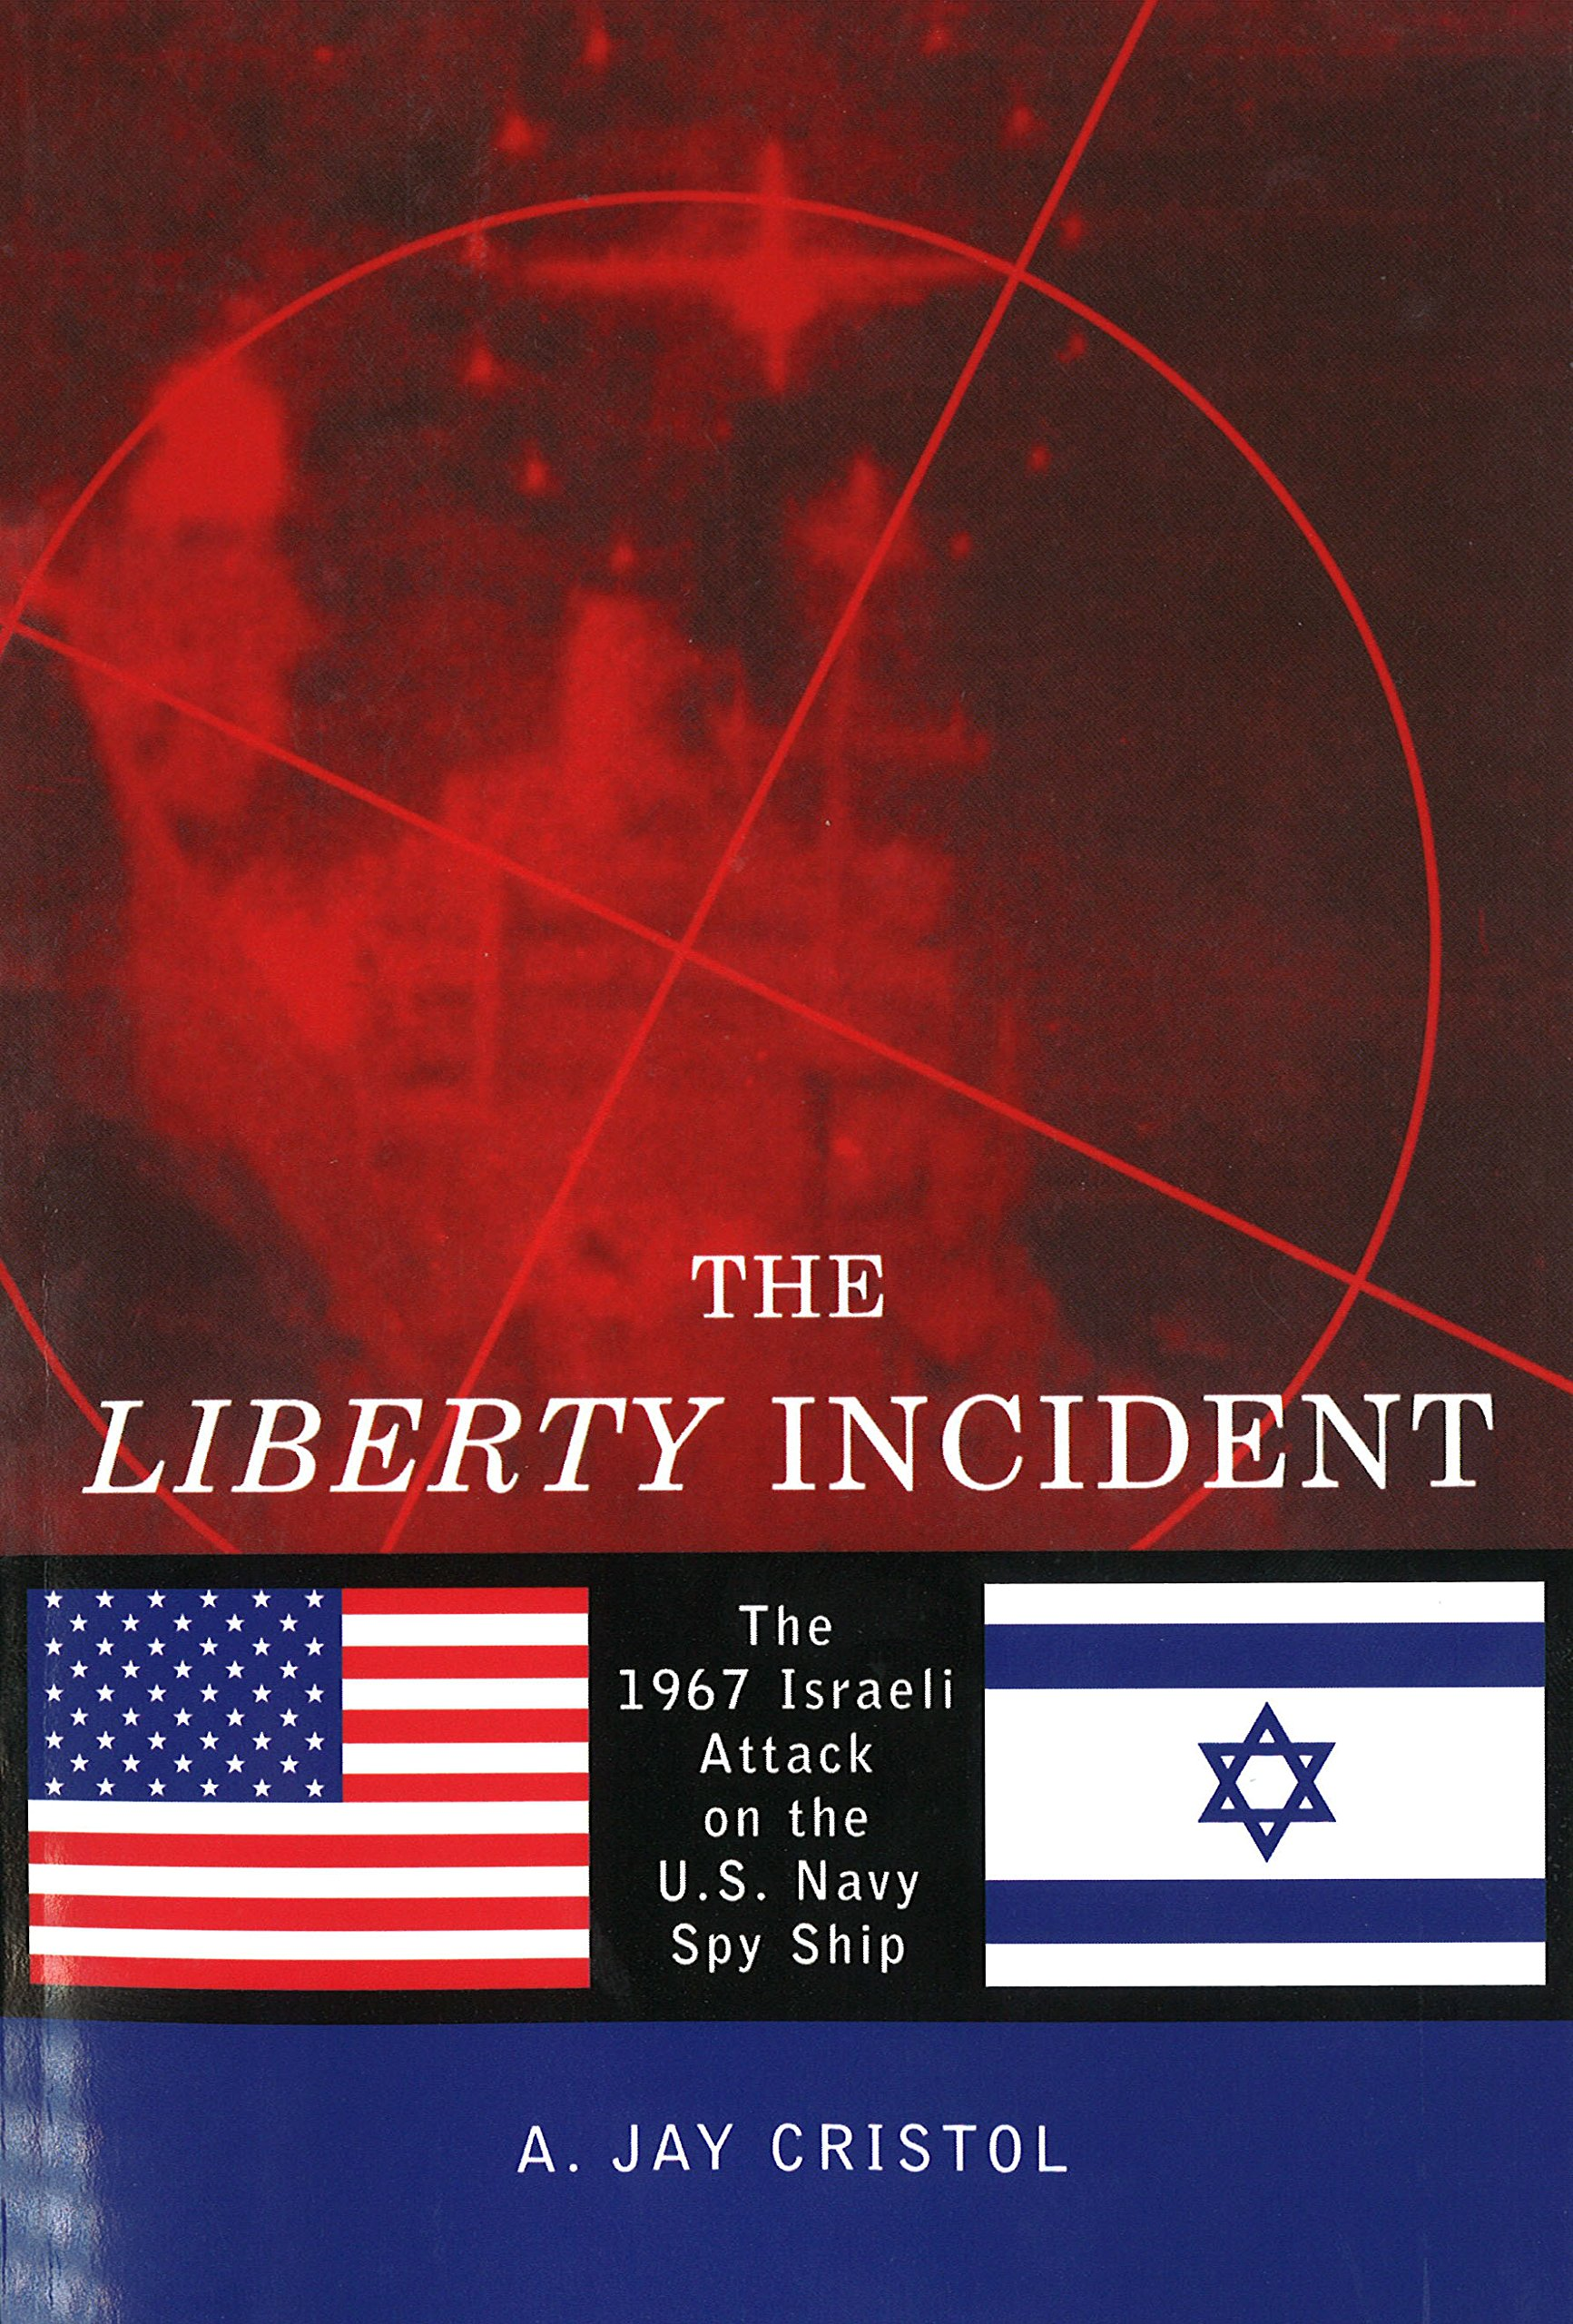 9add8924 The Liberty Incident: The 1967 Israeli Attack on the U.S. Navy Spy ...